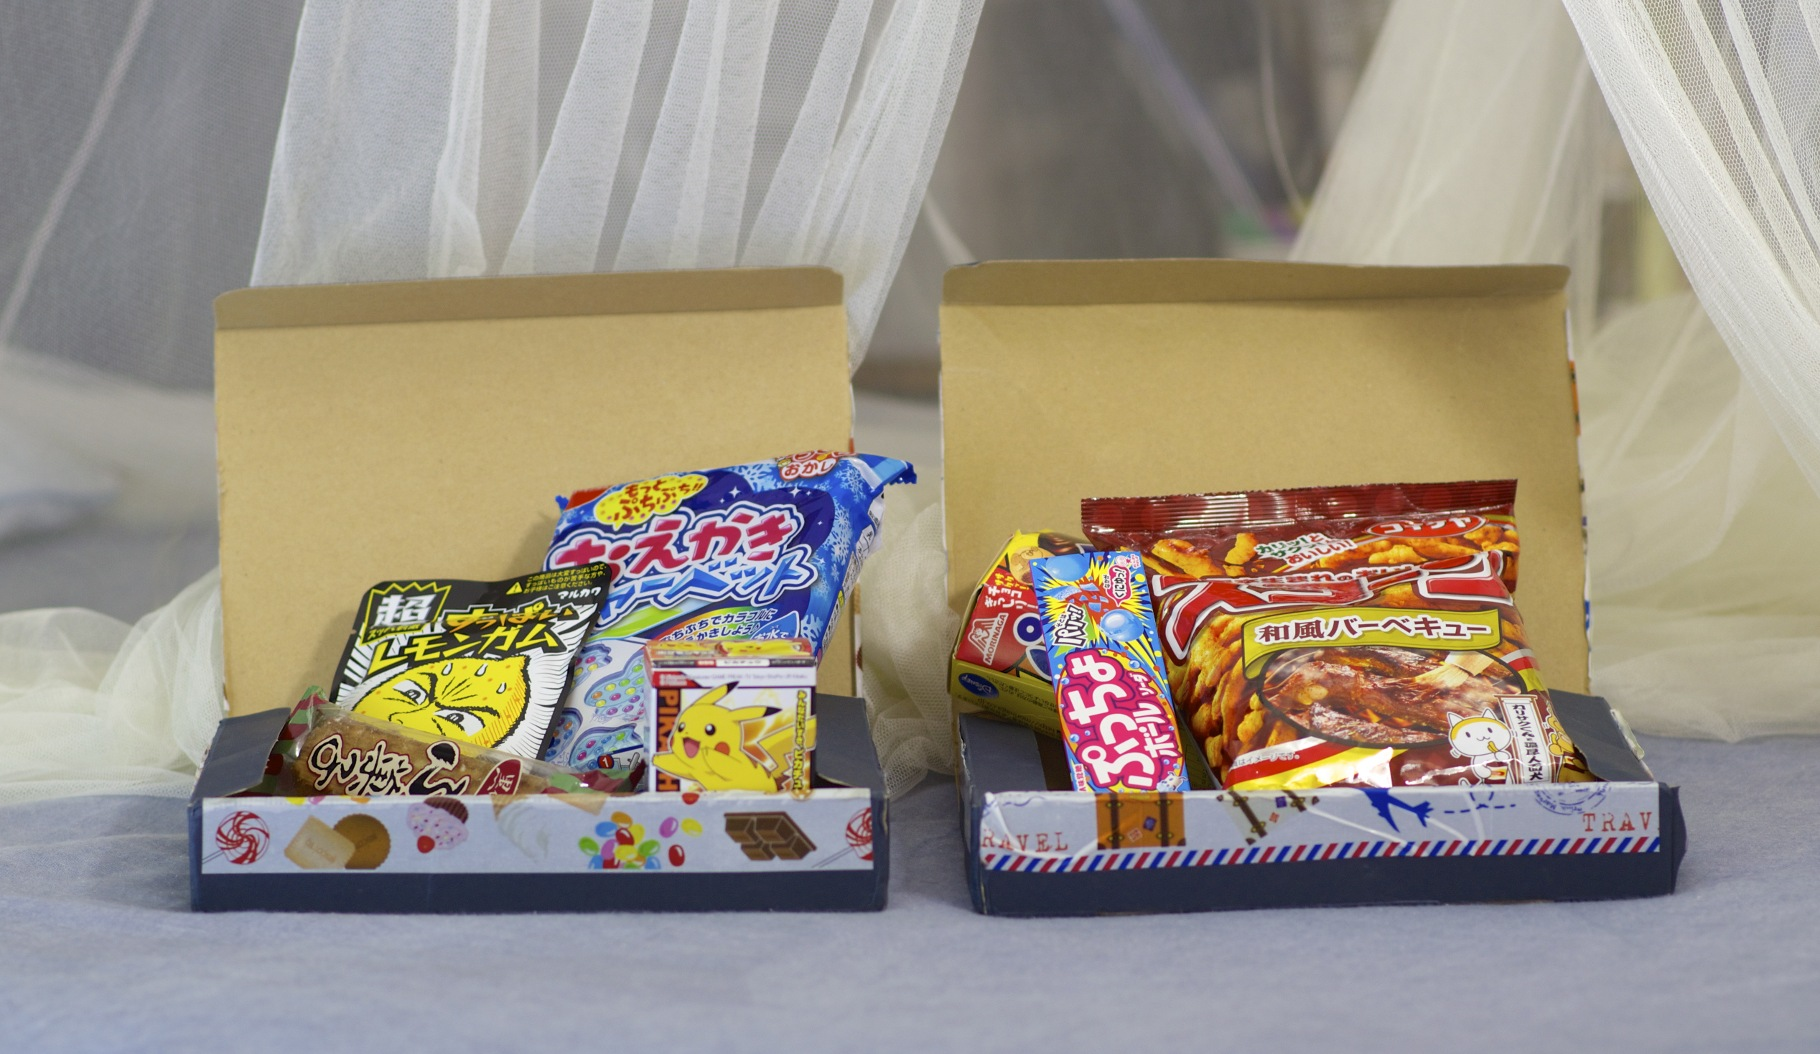 Candy Japan boxes